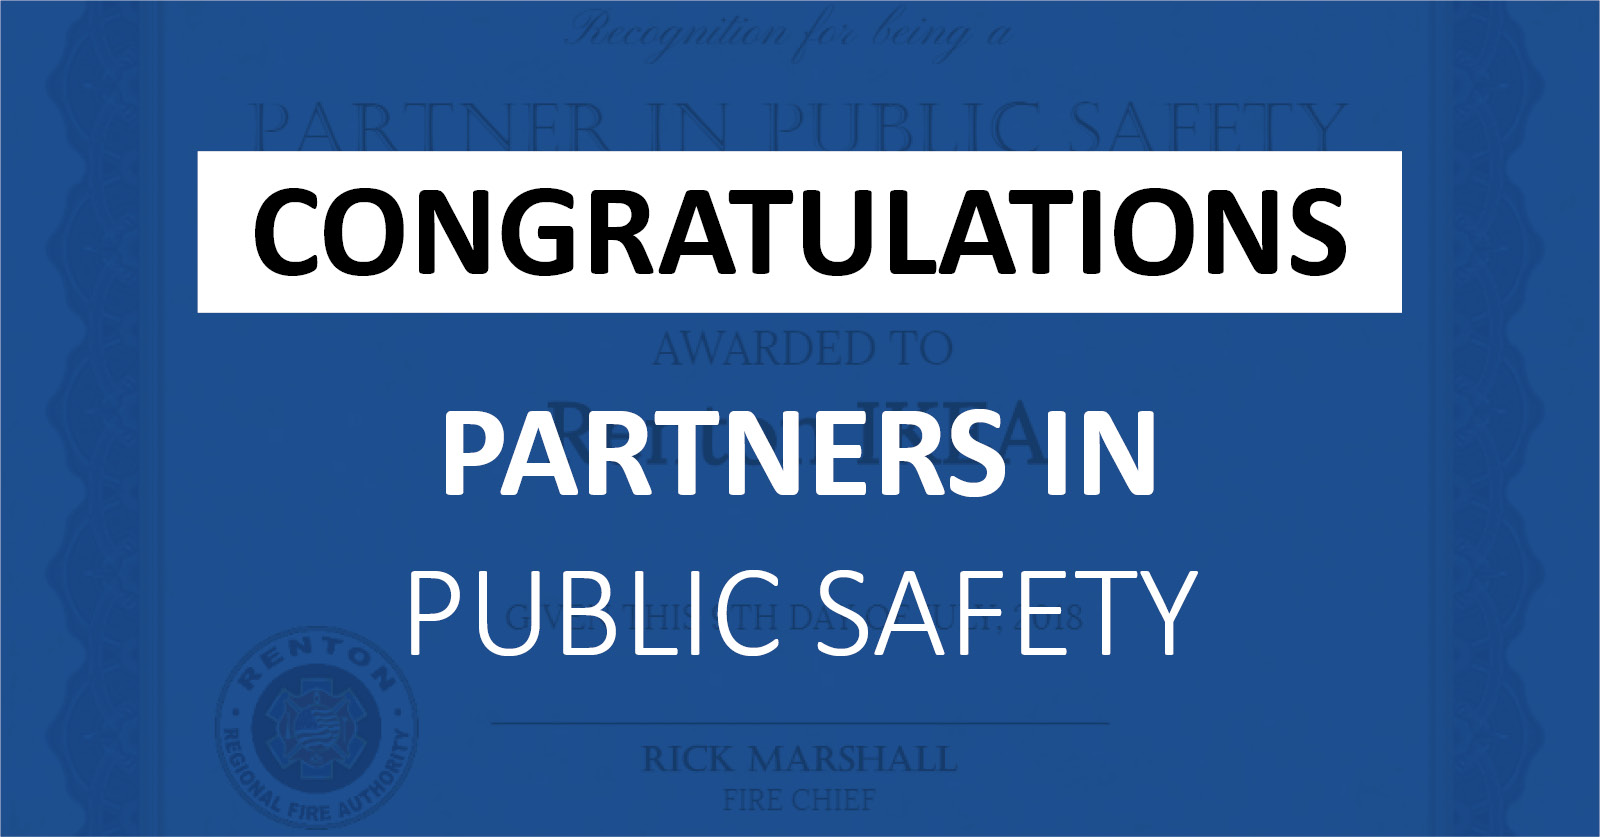 Partners in Public Safety